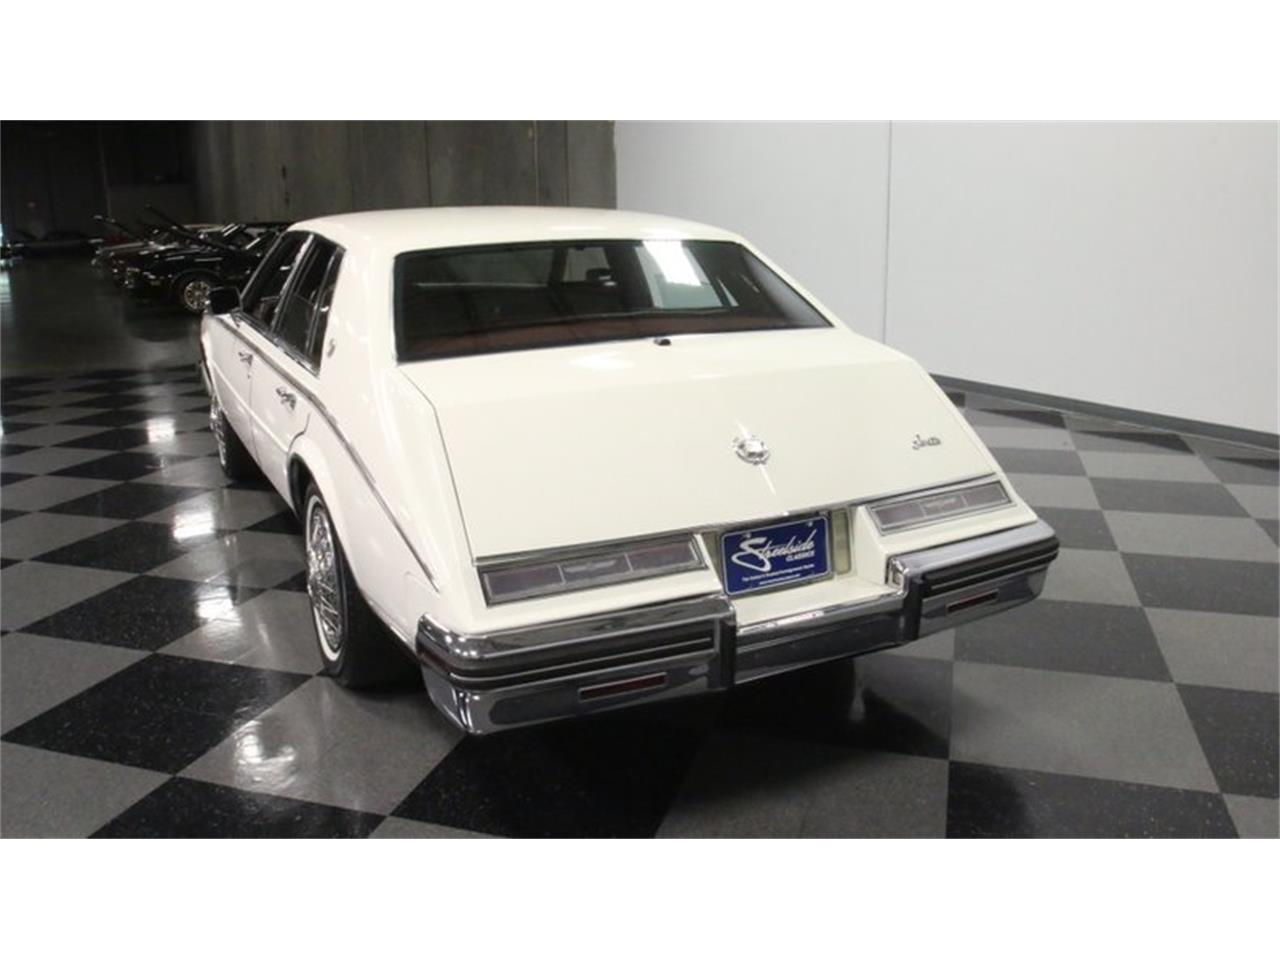 Large Picture of '85 Cadillac Seville located in Lithia Springs Georgia - $11,995.00 - Q3ZM